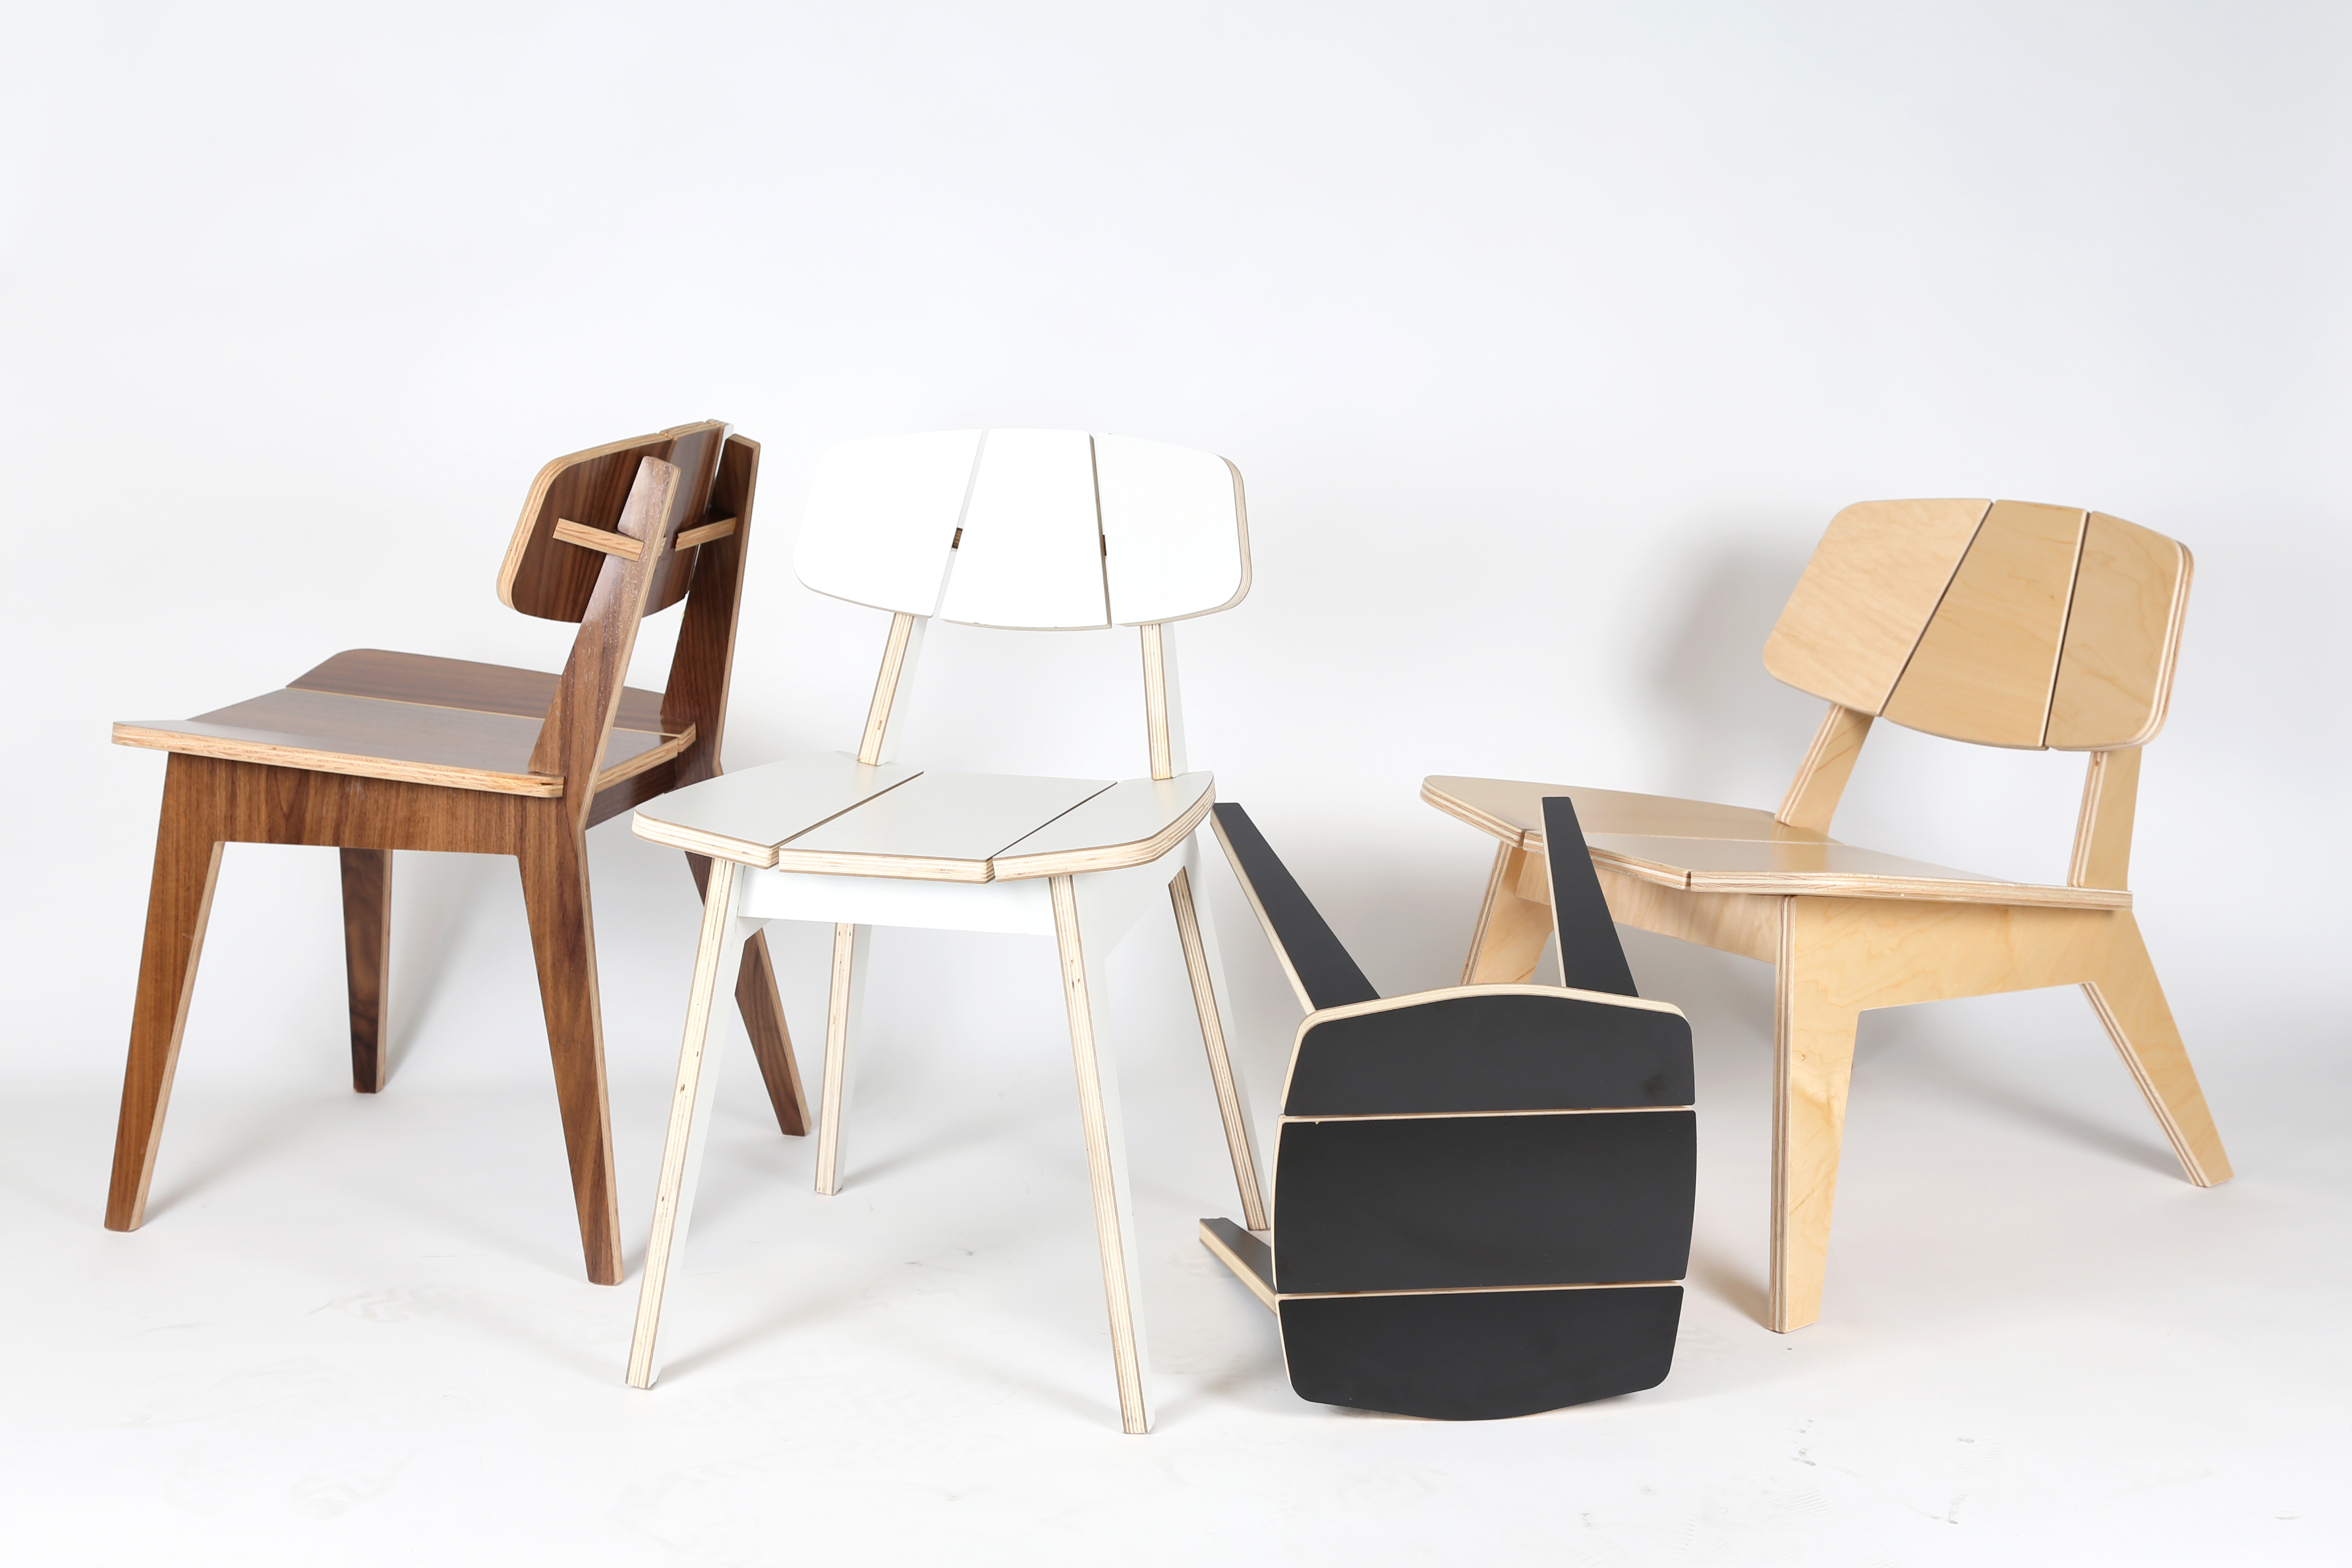 Picture of P9C - Chair Made With CNC Router